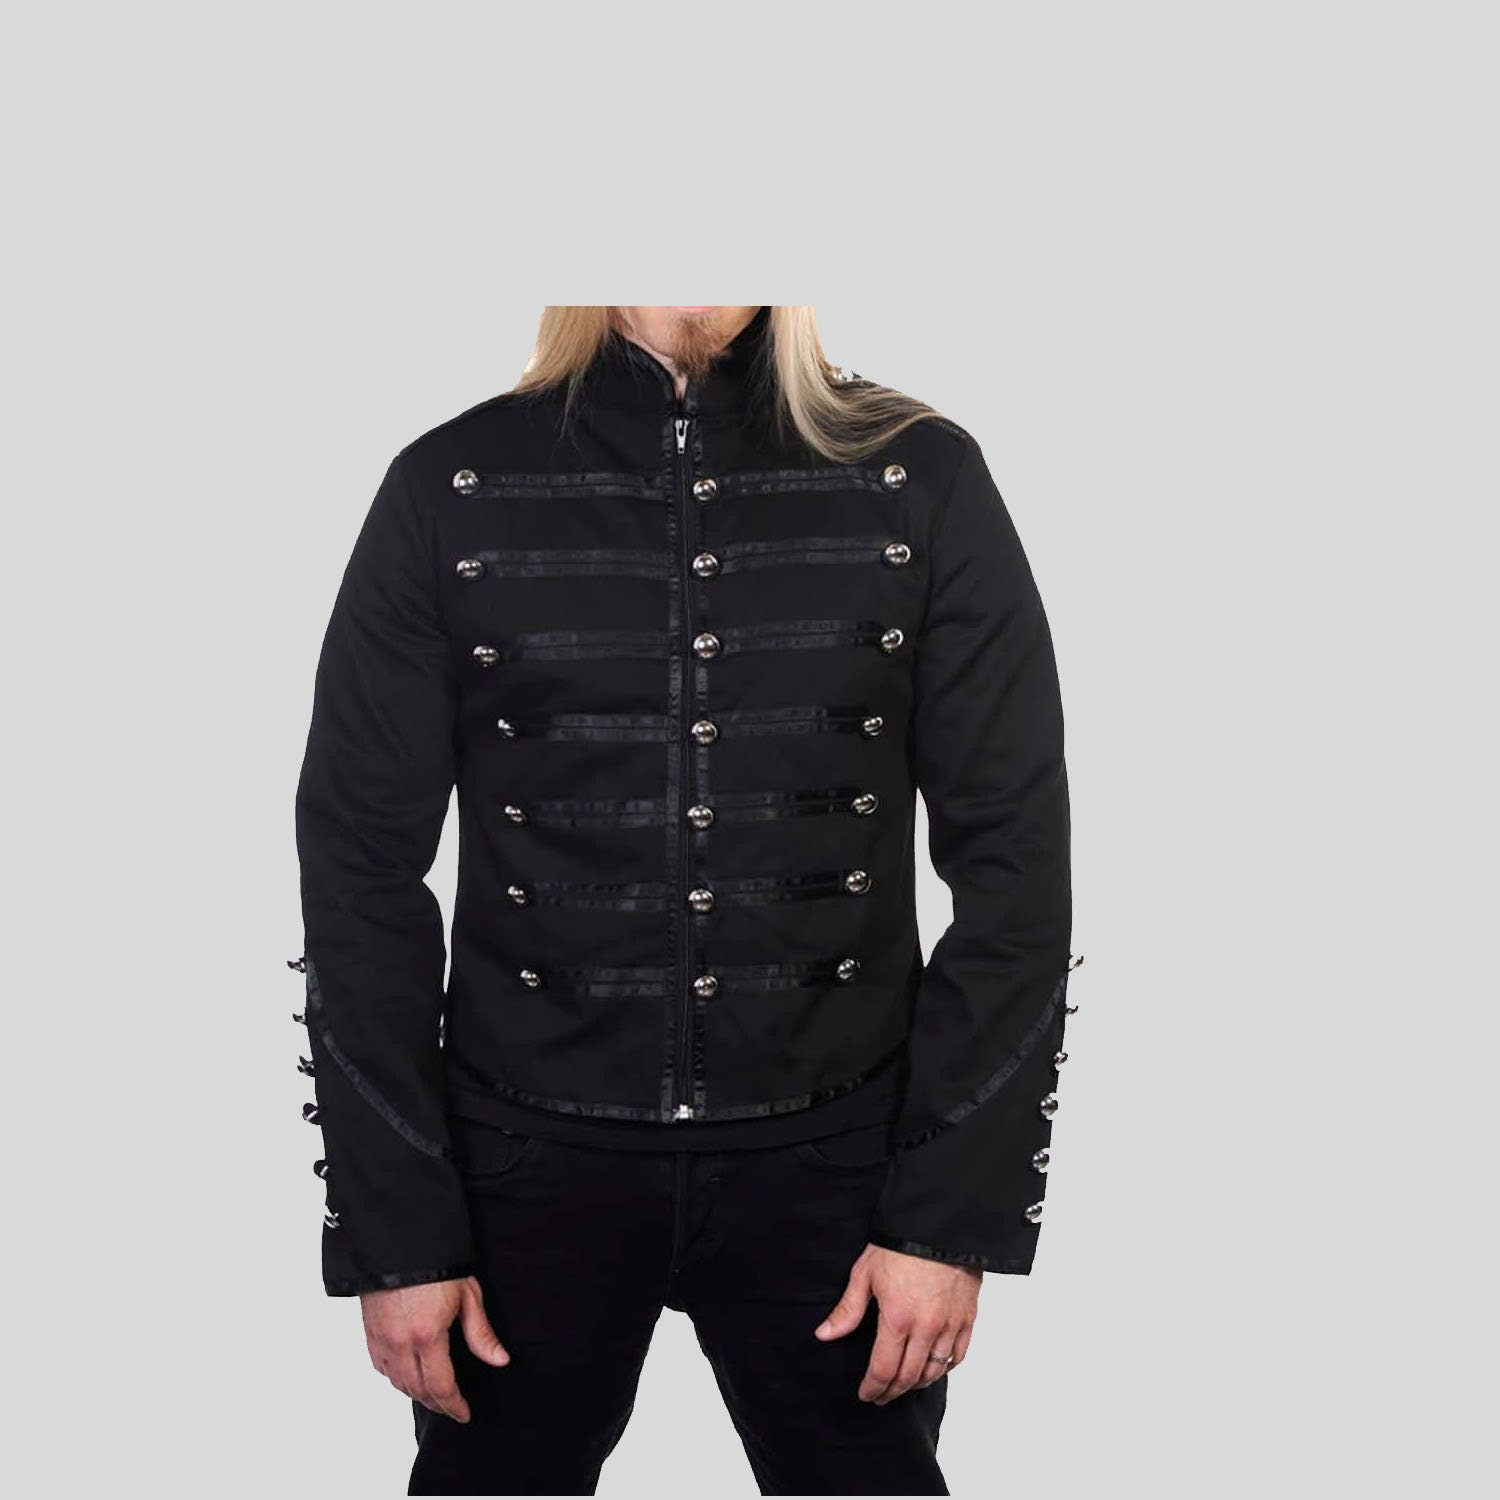 Mens Unique Gothic Steampunk Silver Black Parade Military Marching Band Jacket